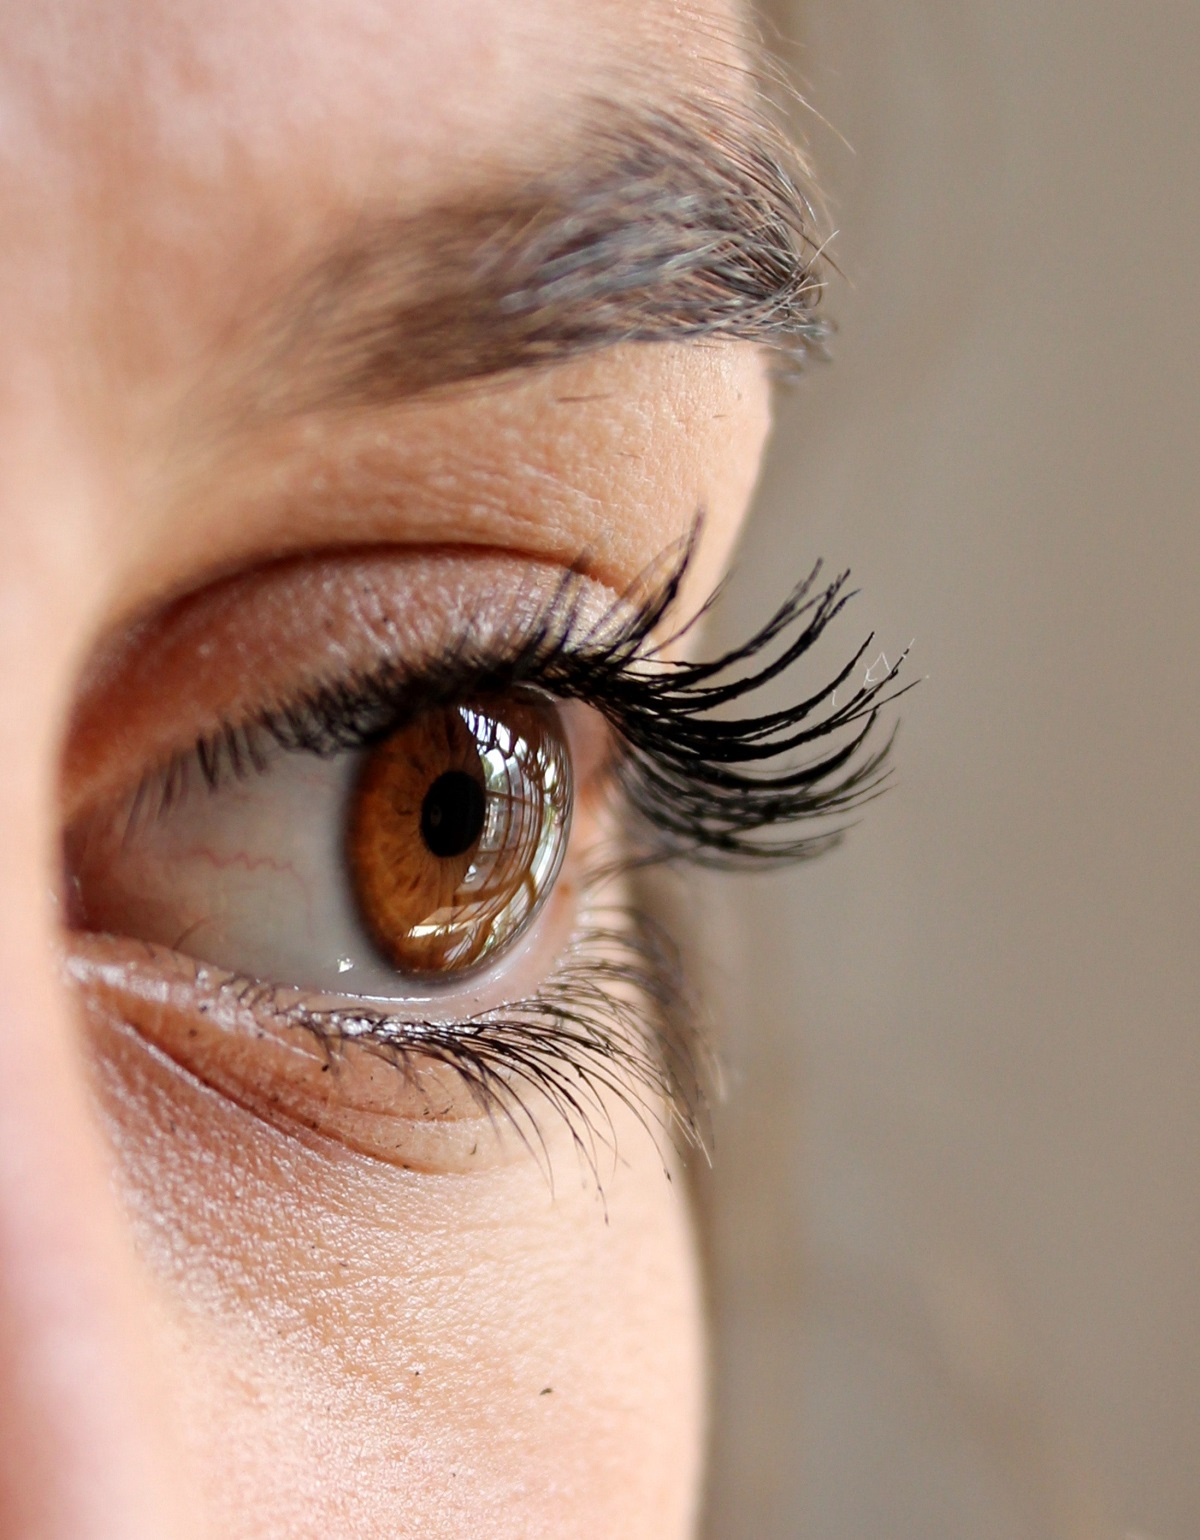 The Best Eyelash Growth Serum May Not Work For You